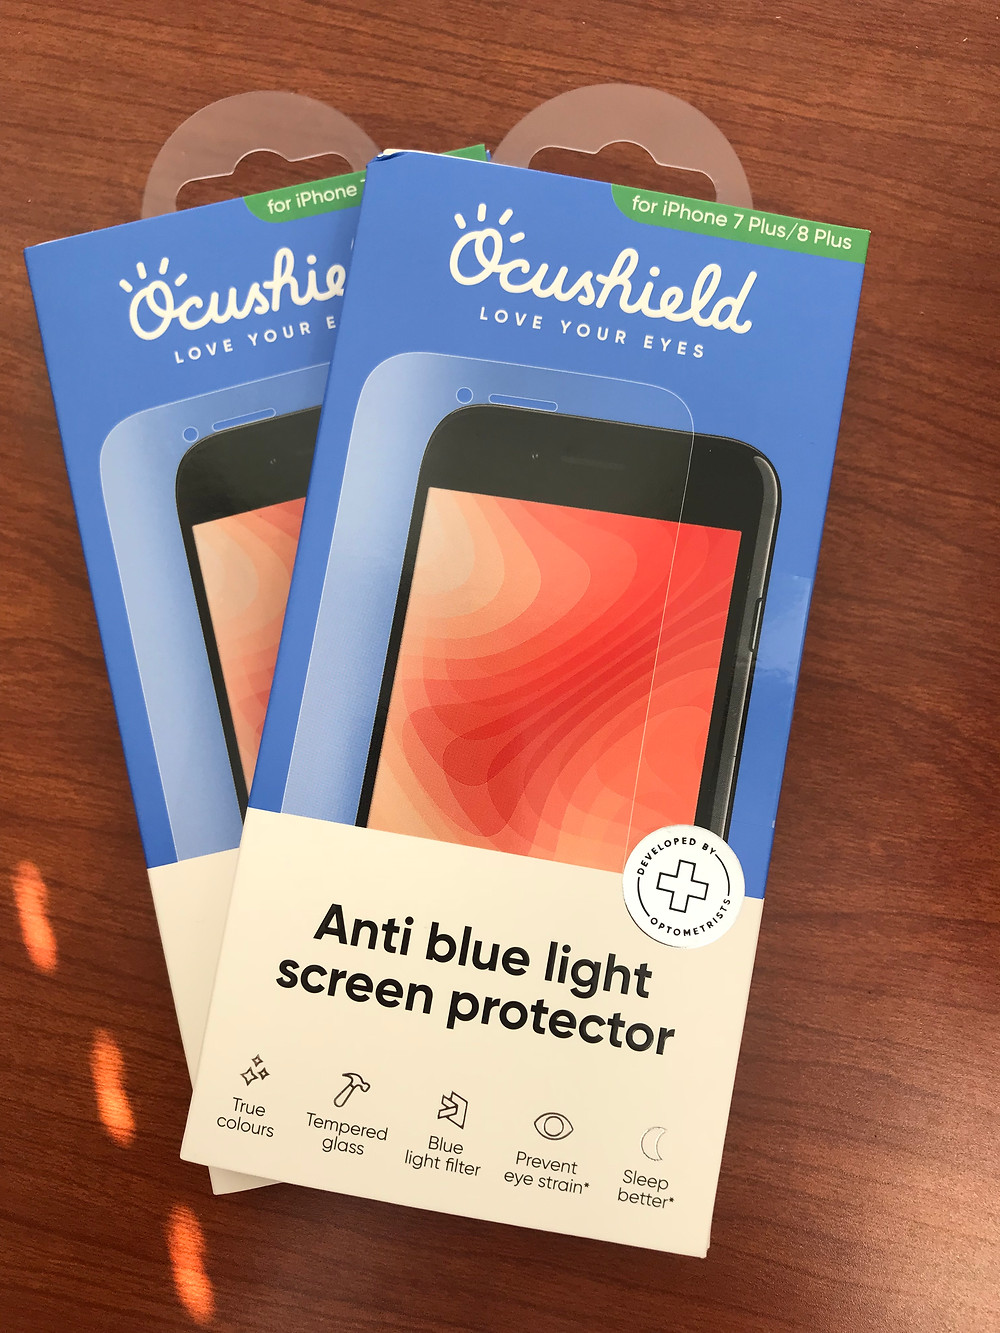 Ocushield Anti-Blue light Screen Protector